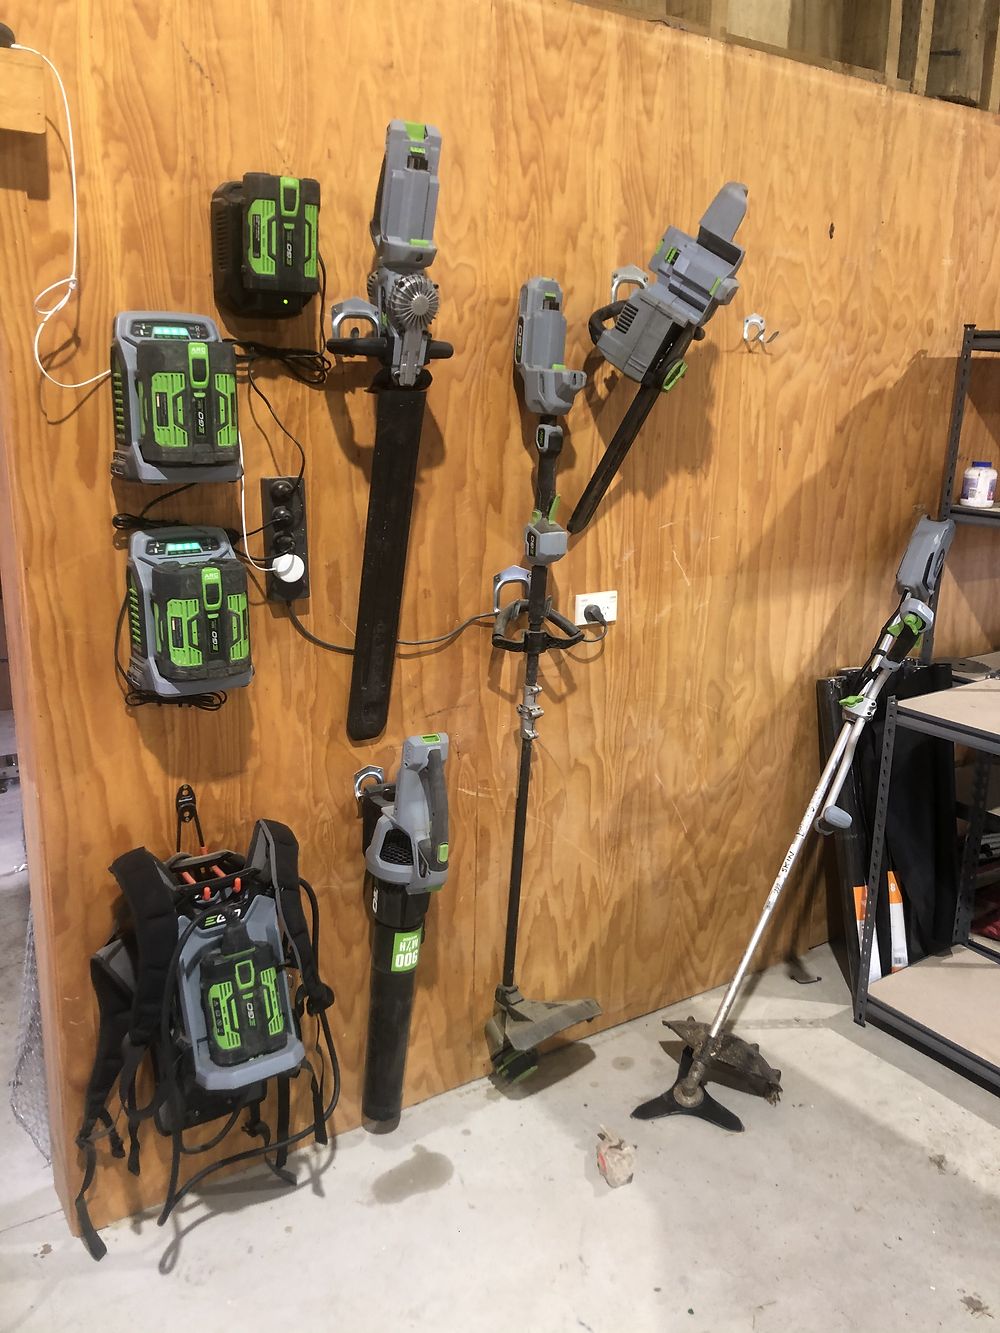 Electric Batteries, line trimmer, brush cutter, hedge trimmer, leaf blower and chainsaw